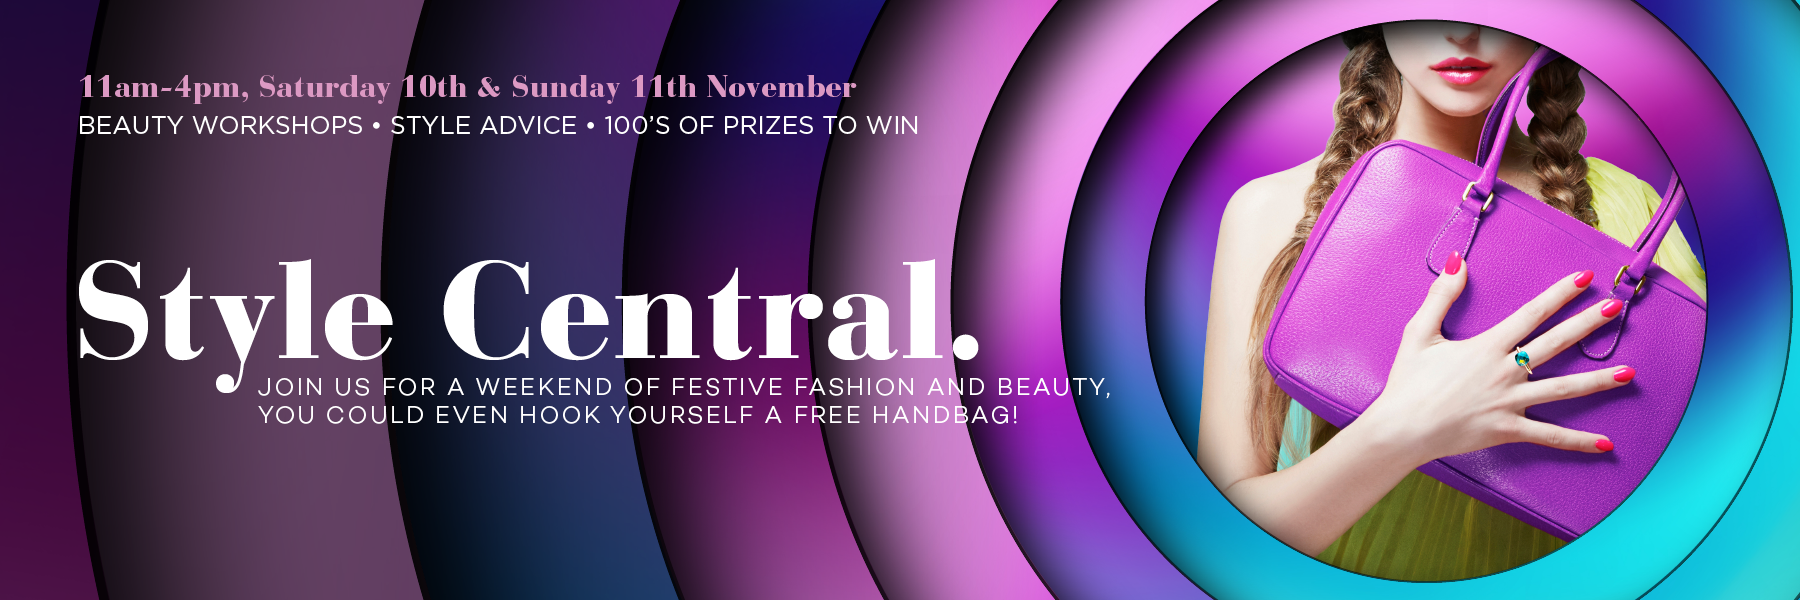 Style Central – Festive Fashion Event